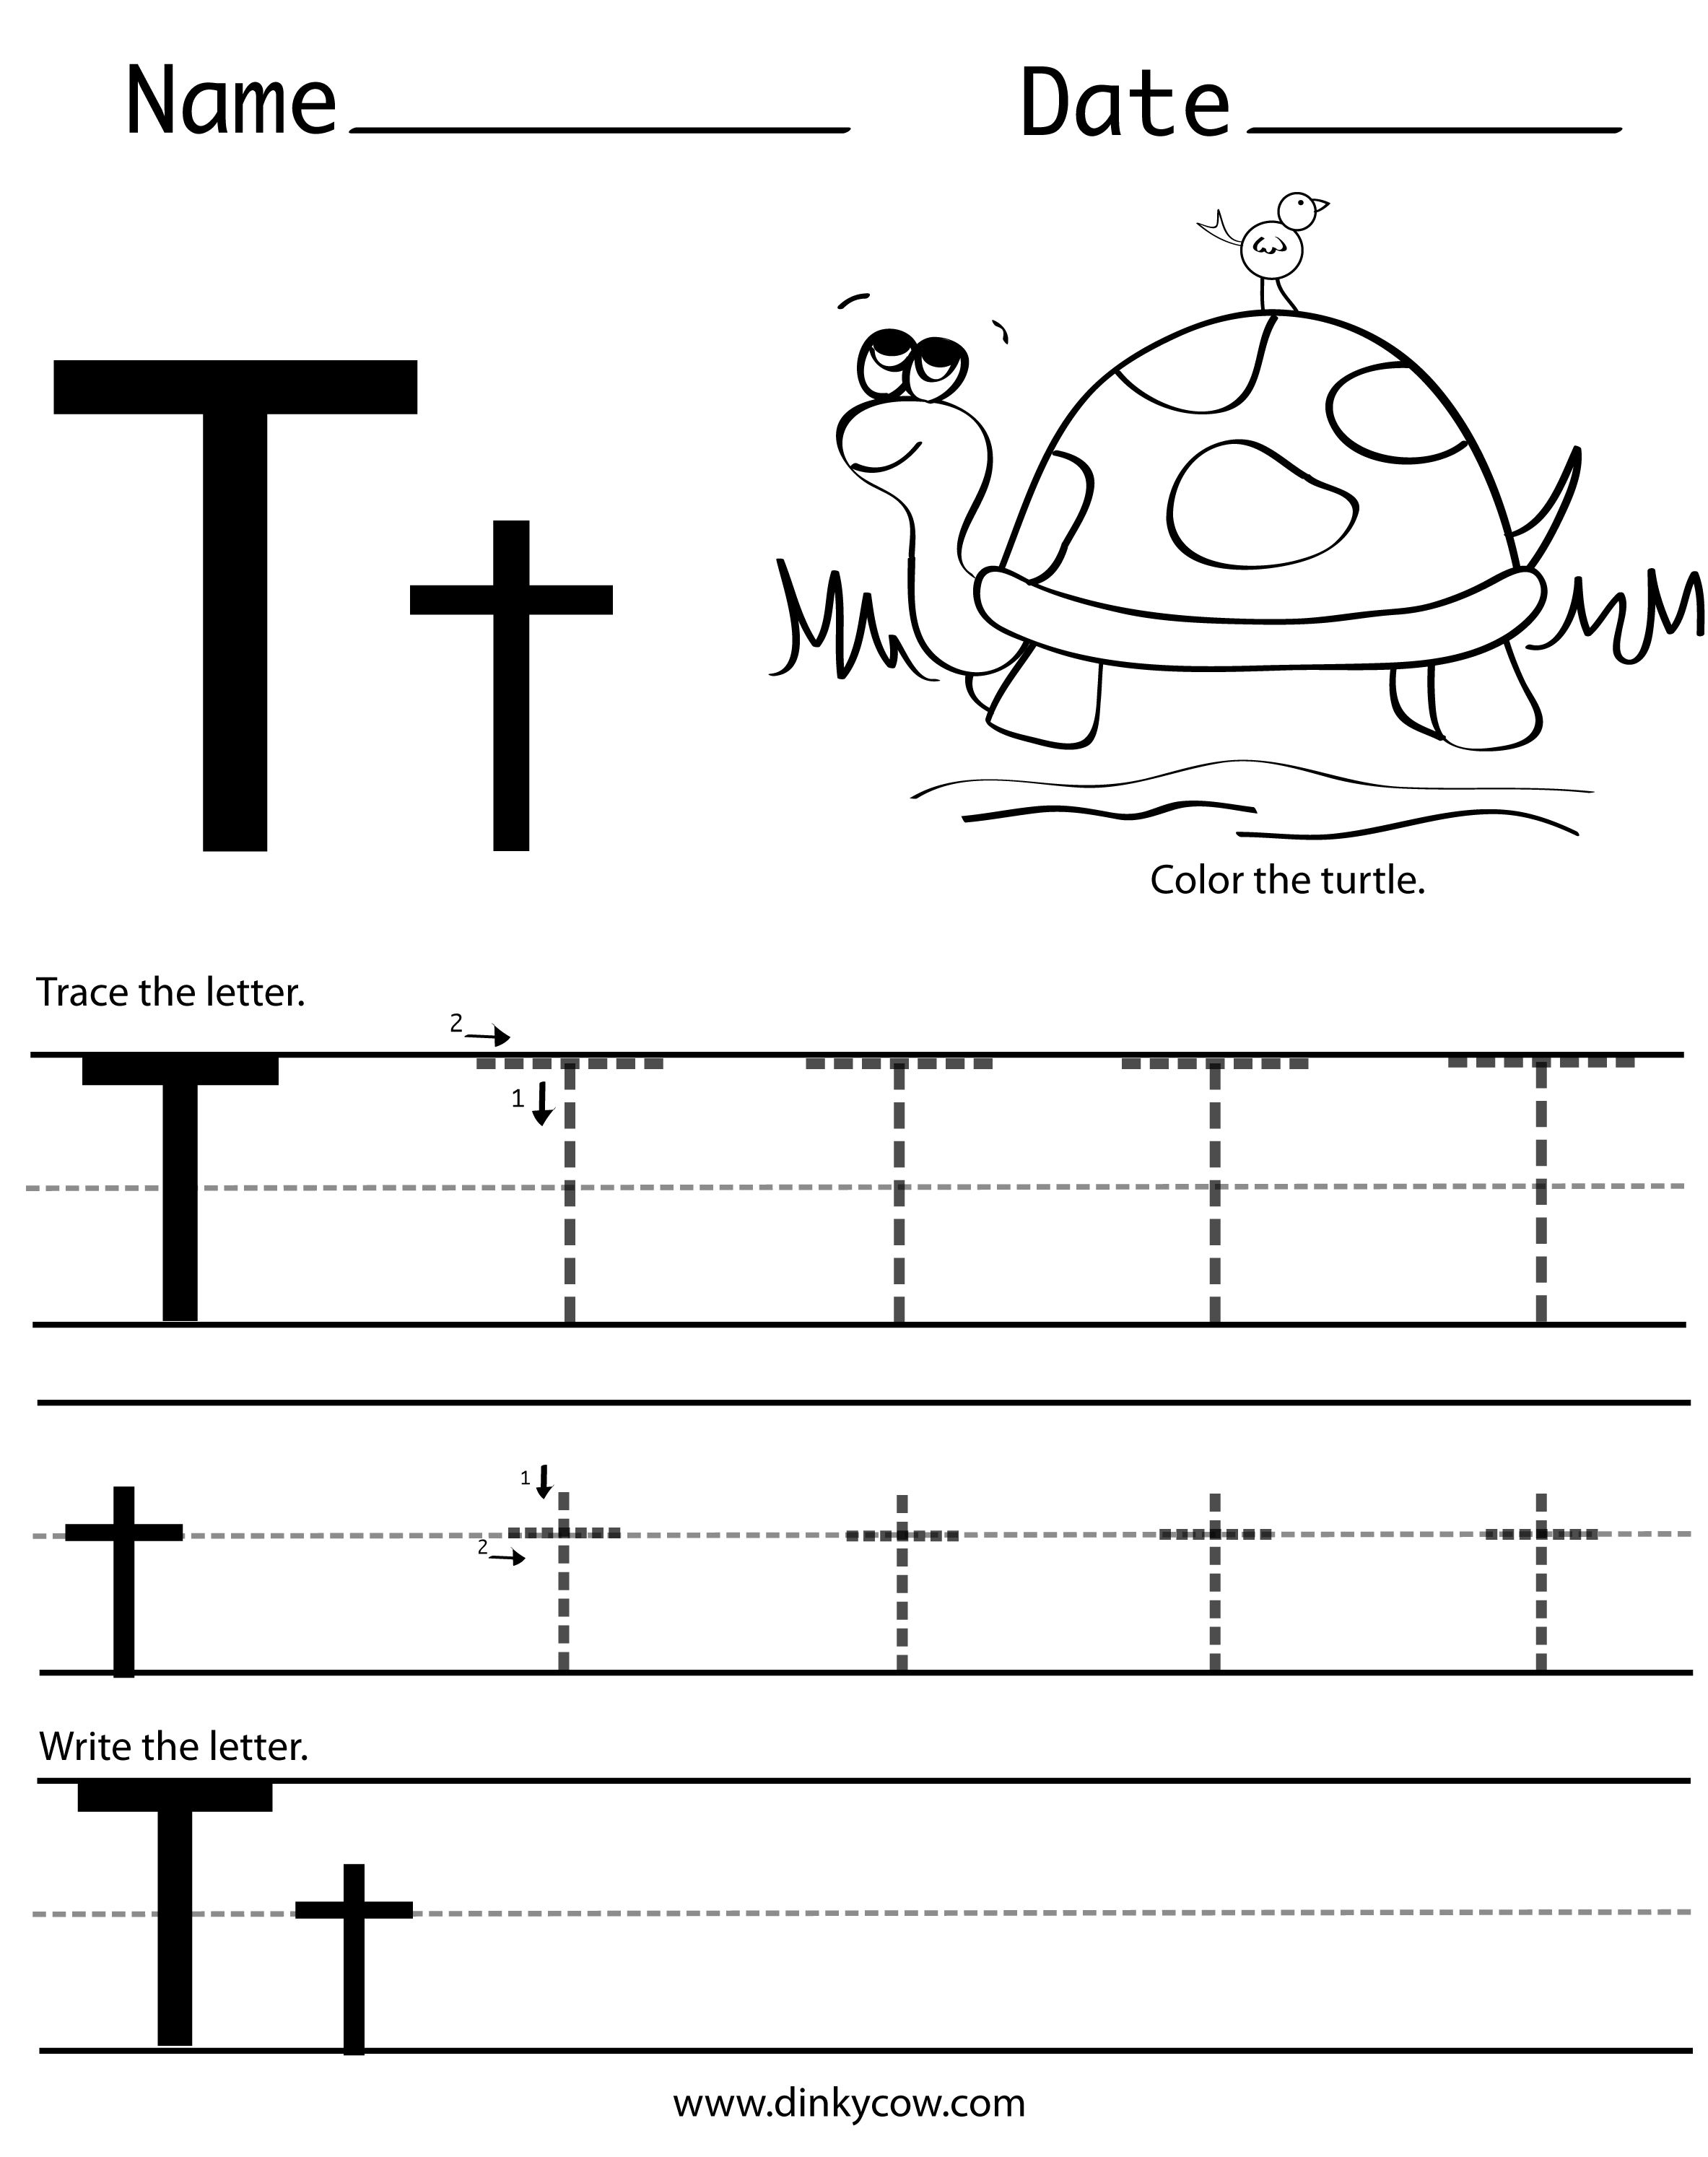 Best Abc Worksheets Ideas Free Alphabet Tracing Printables A Z Dinkycow Letter M